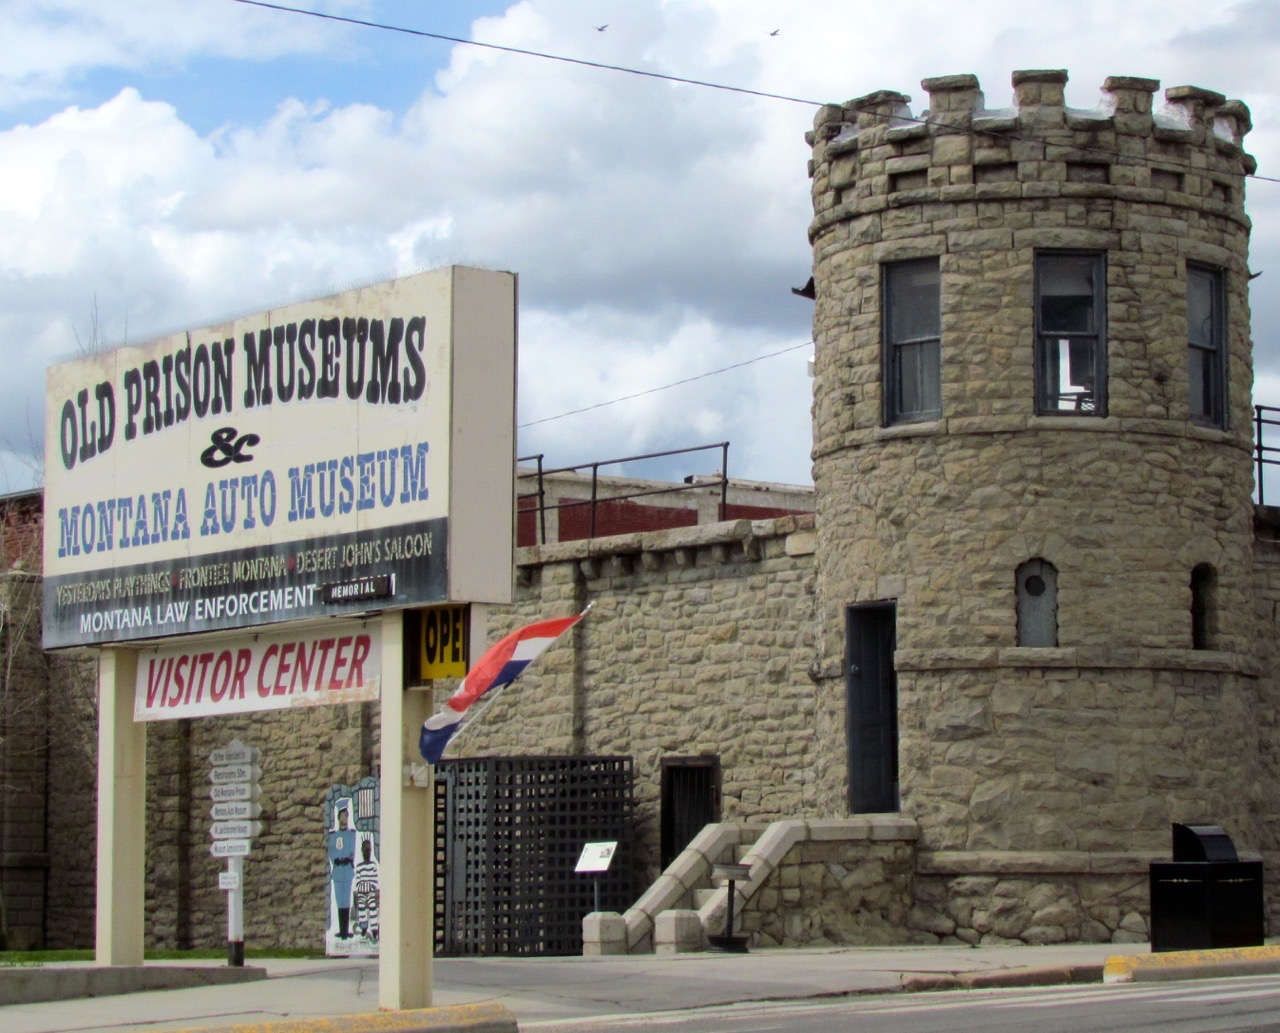 The old Montana state prison has been turned into a museum